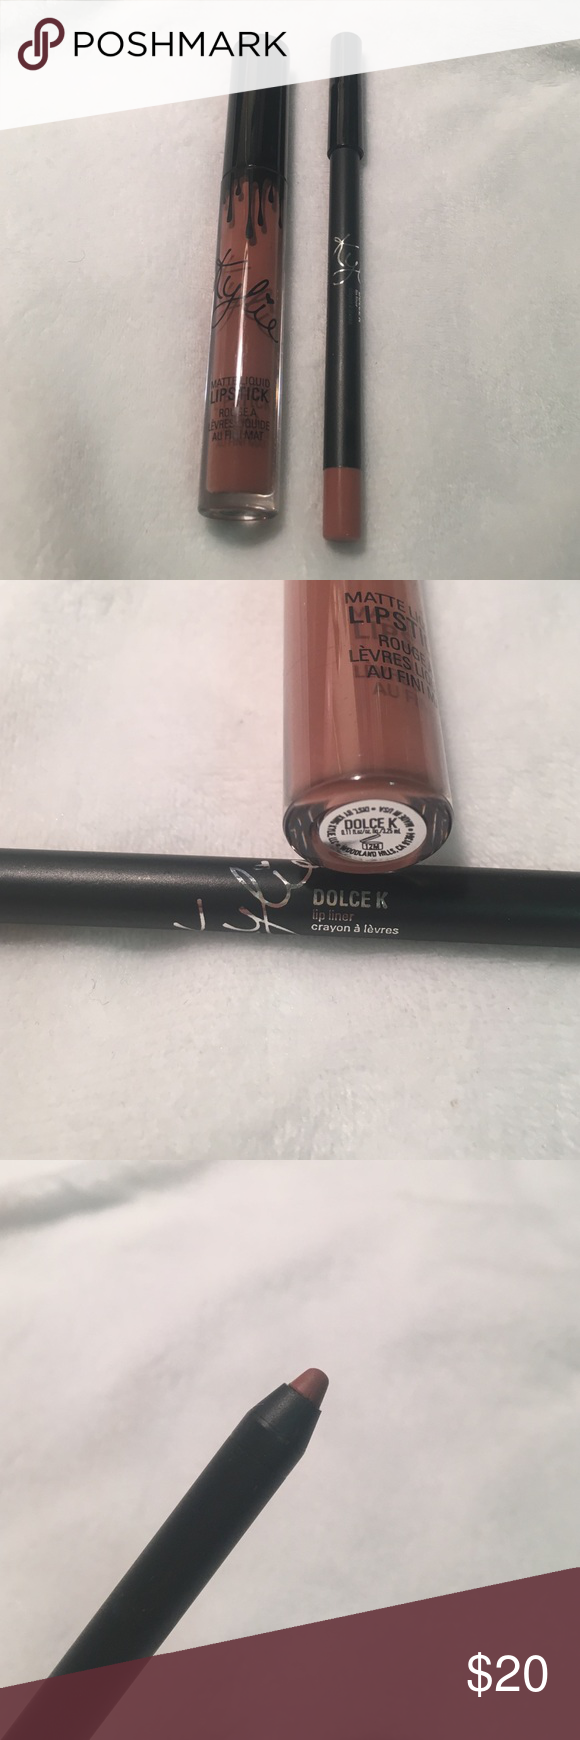 Kylie cosmetics Dolce K Authentic Kylie cosmetics Dolce K lip liner and liquid lipstick. Swatched on arm but never used on lips (shown in third picture) Kylie Cosmetics Makeup Lipstick